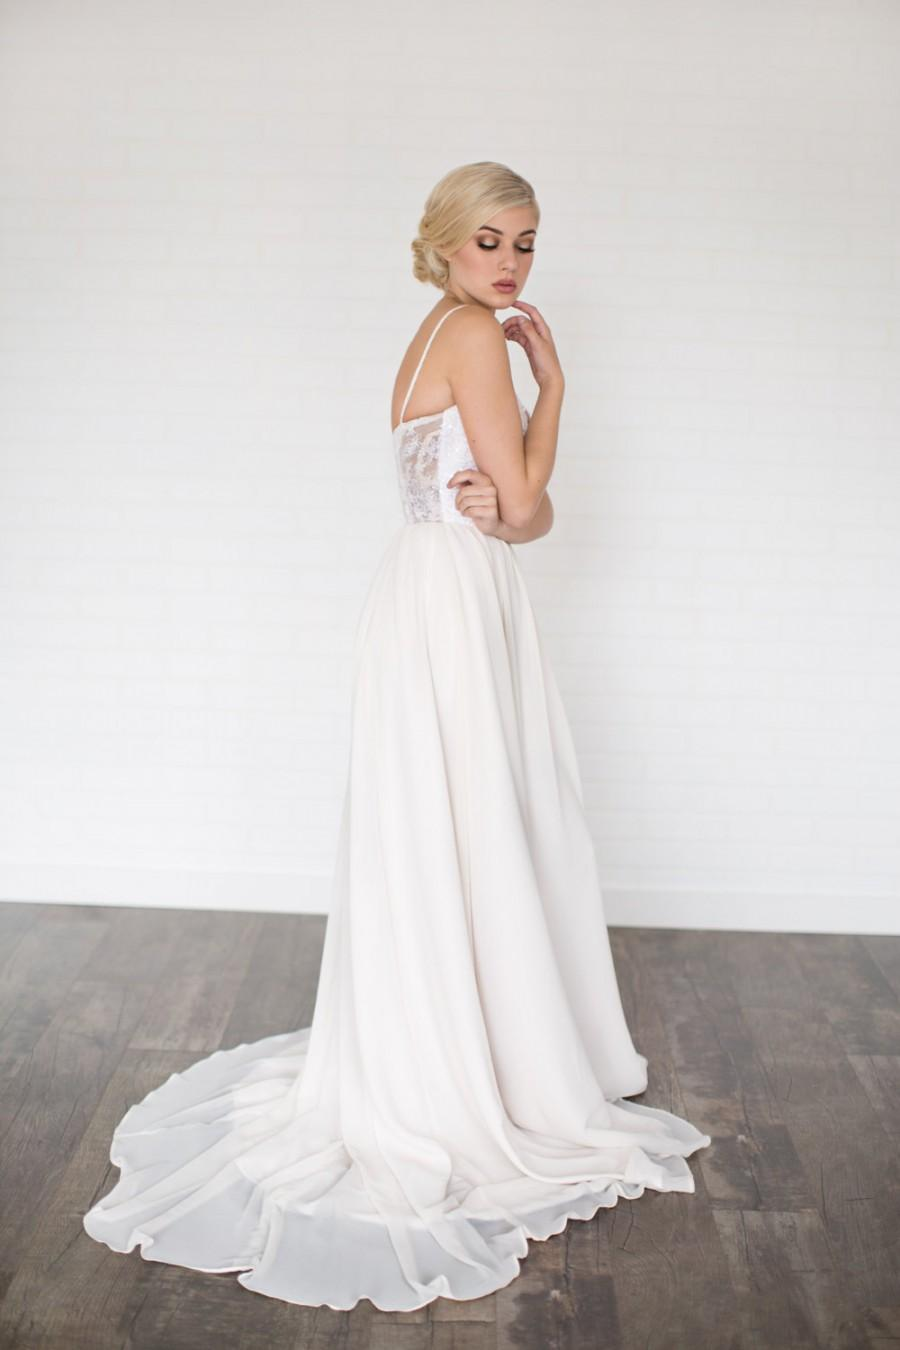 Wedding - Daze Wedding Dress //Modern Boho Chiffon Wedding Dress / Sequin Sweet Heart Neckline with Illusion Lace Back/ Gathered Chiffon Flowing Skirt